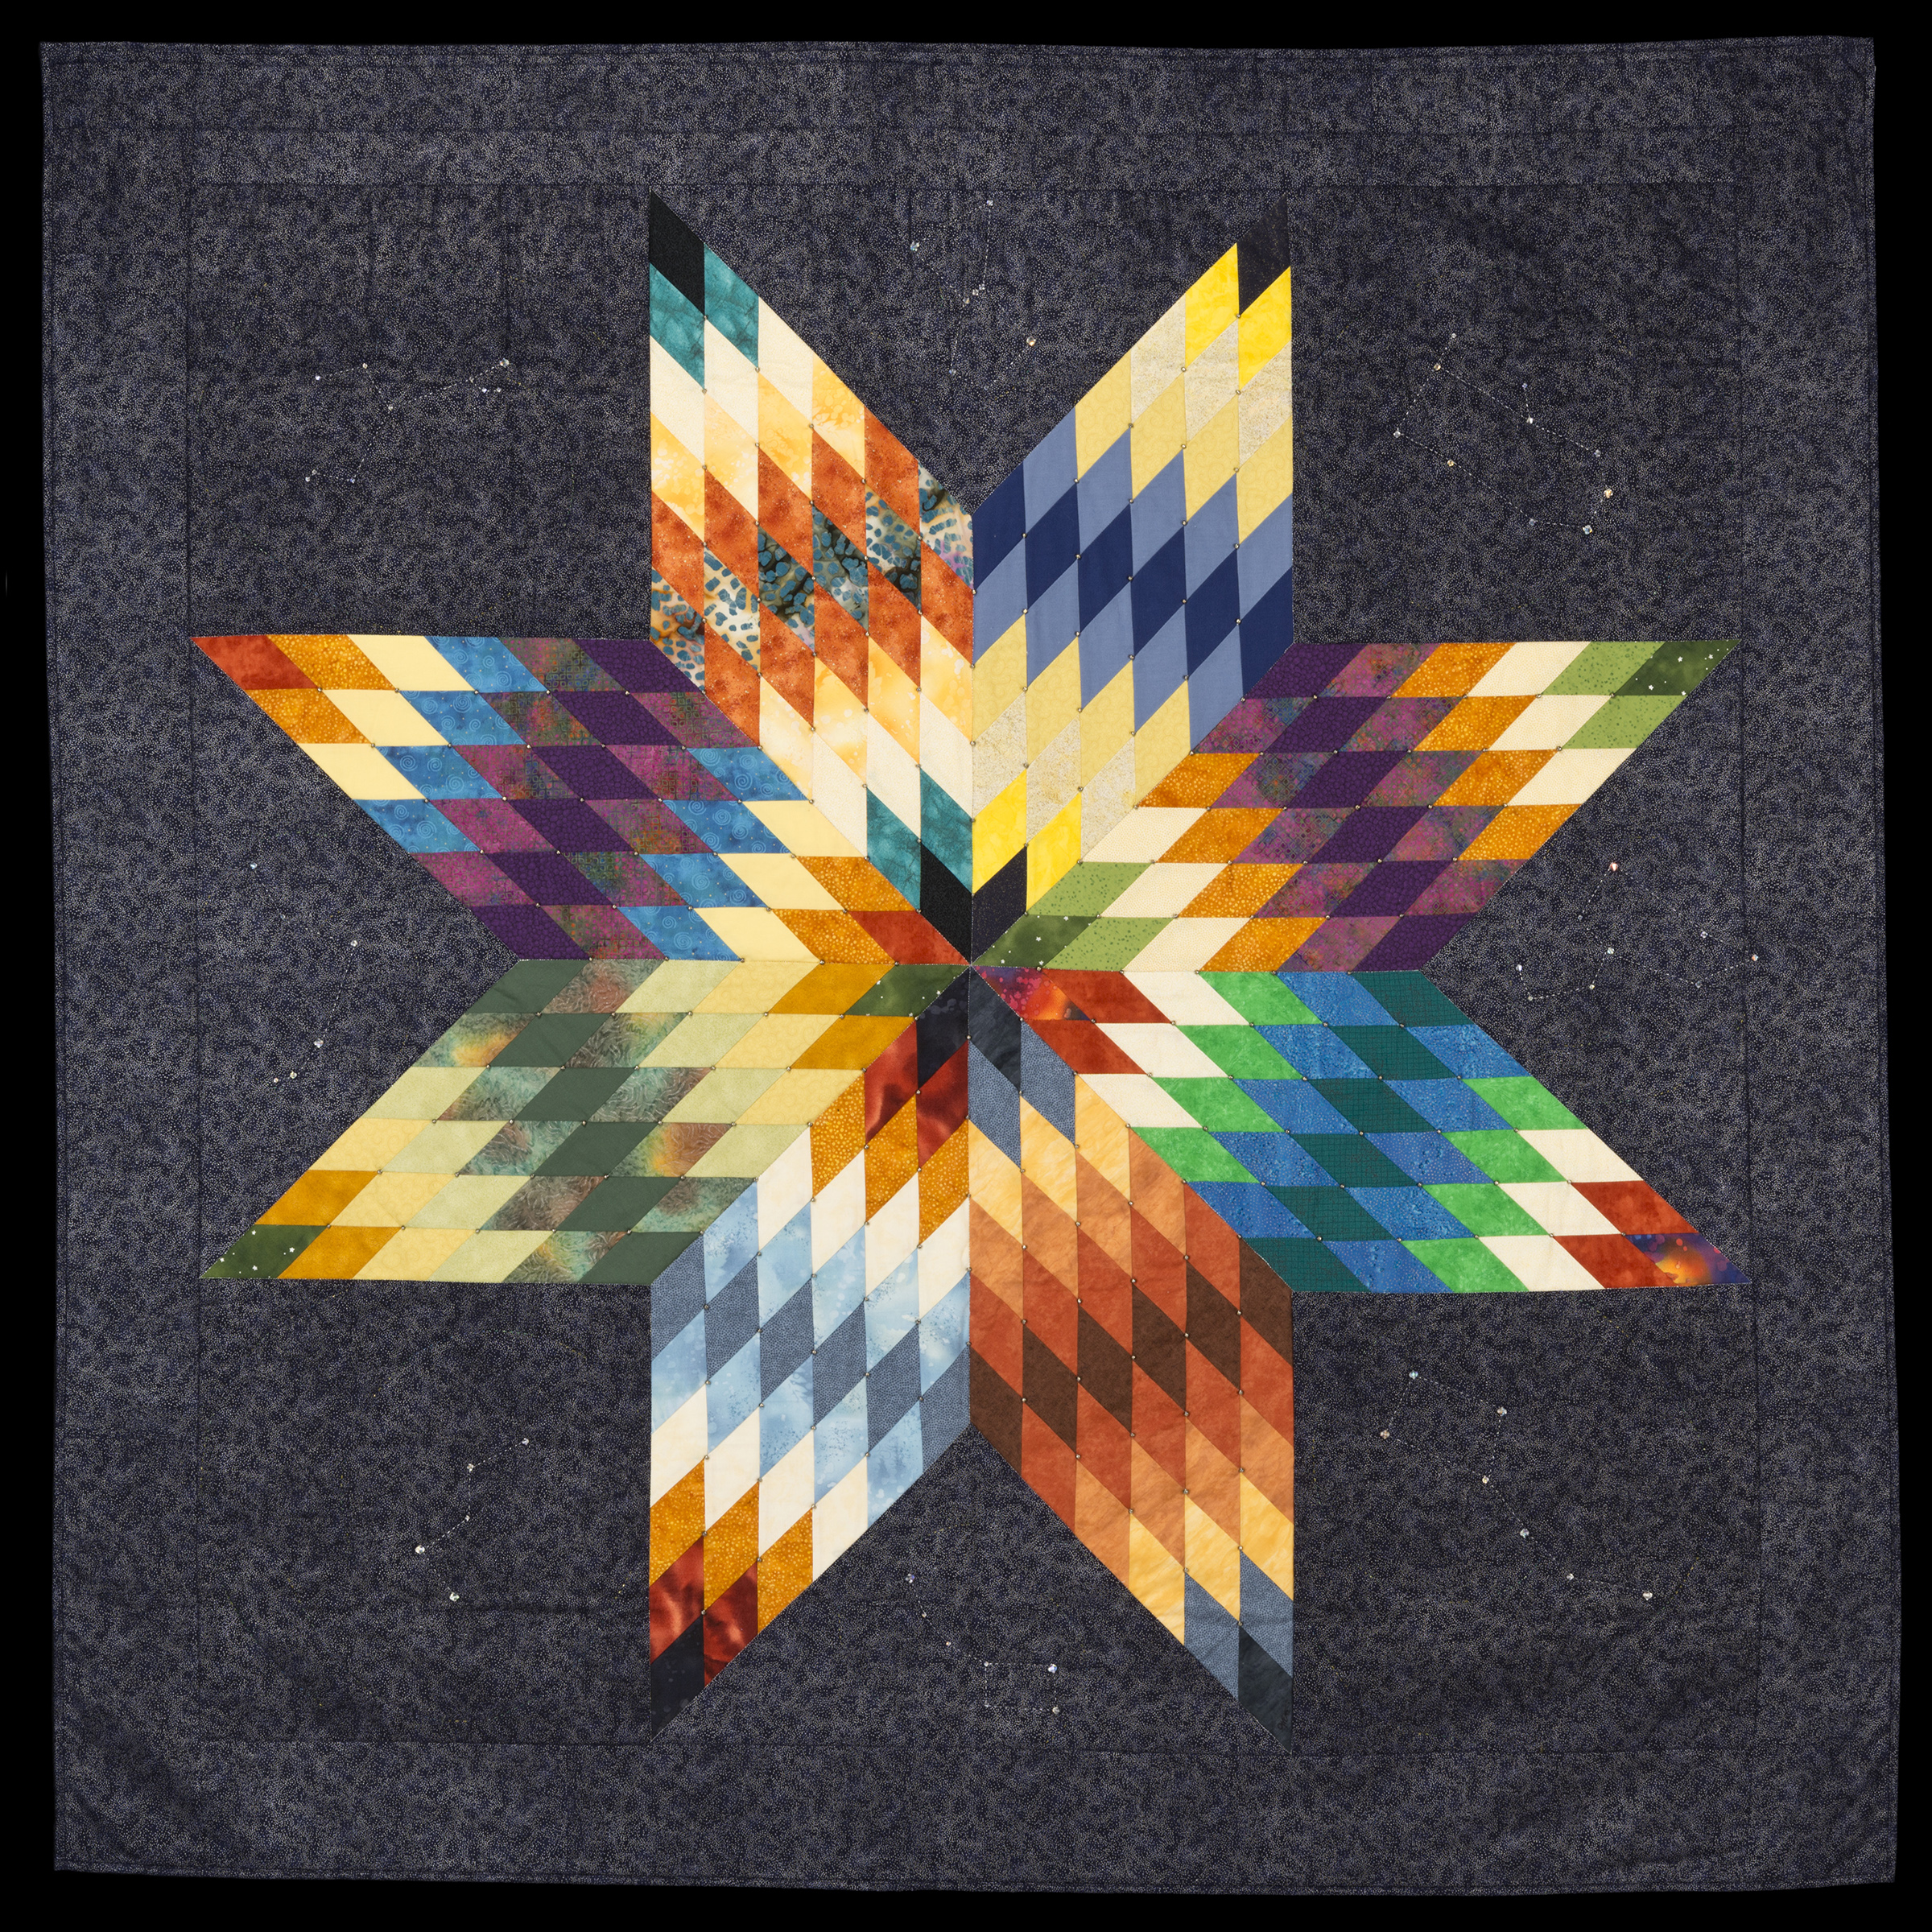 Gwen Westerman quilt at the Minnesota Historical Society